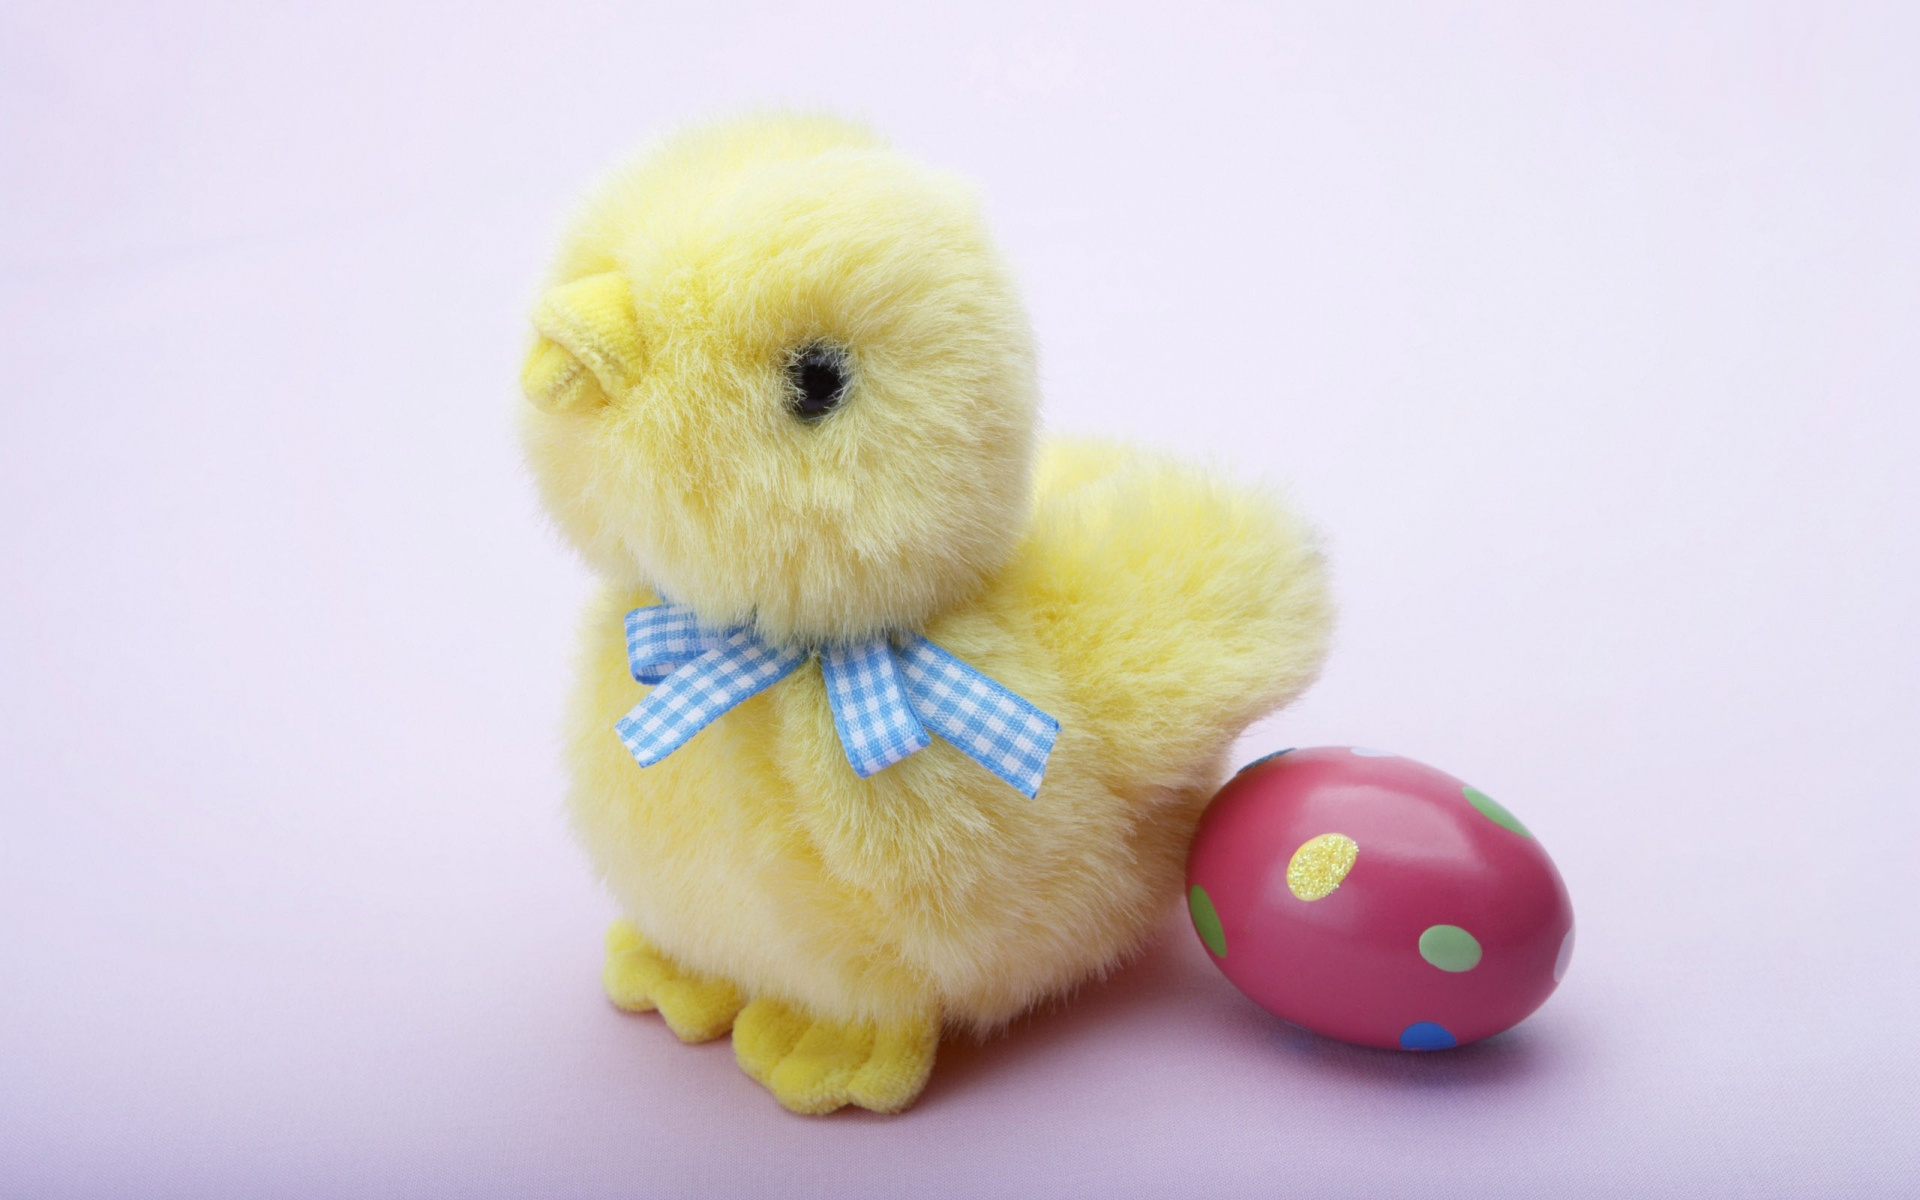 Easter 2013 cute baby design hd wallpaper Stunning Easter Wallpapers 1920x1200